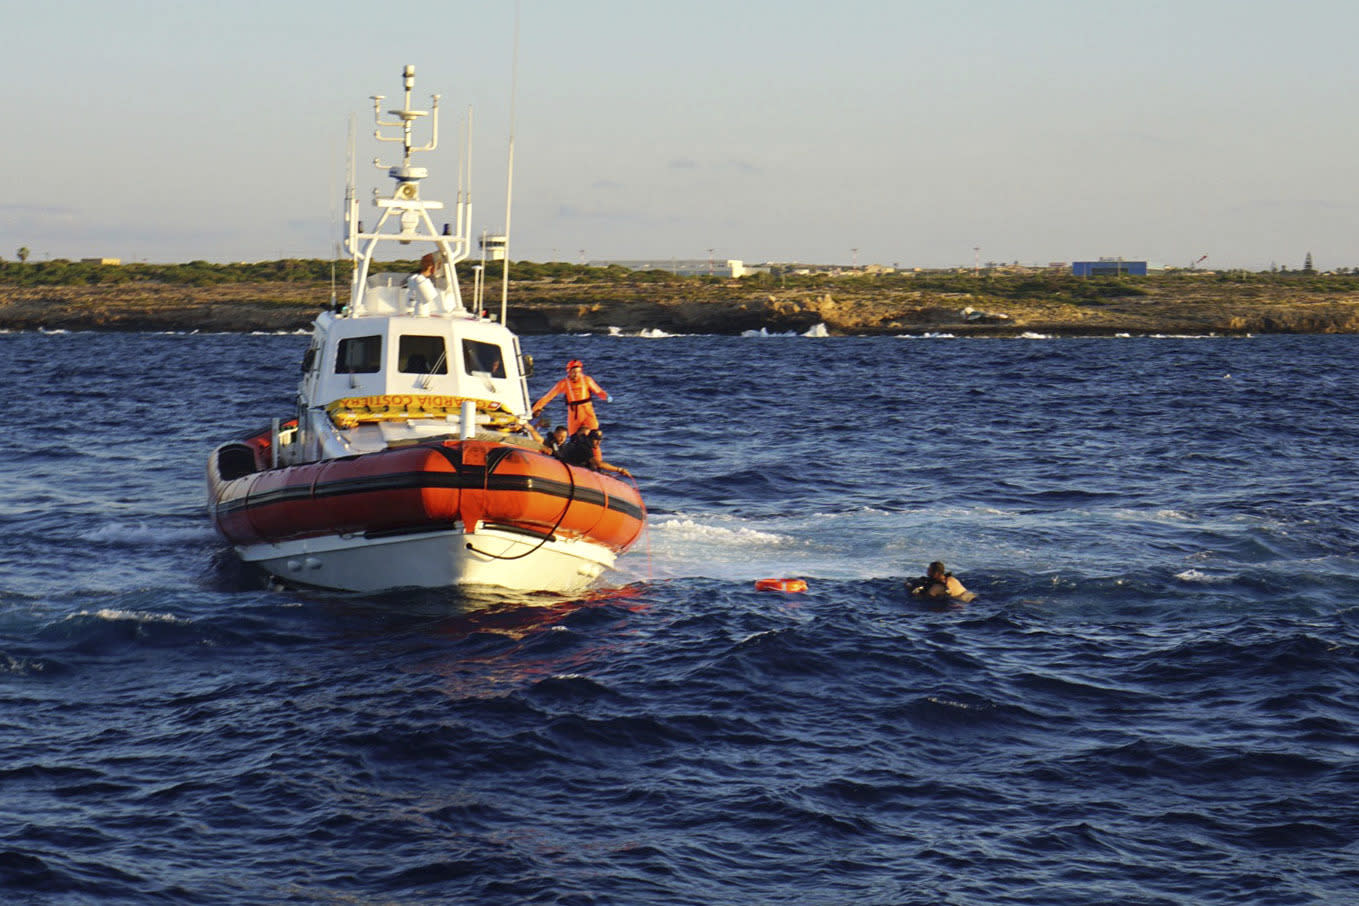 Migrants attempt to swim to coast after jumping off rescue boat